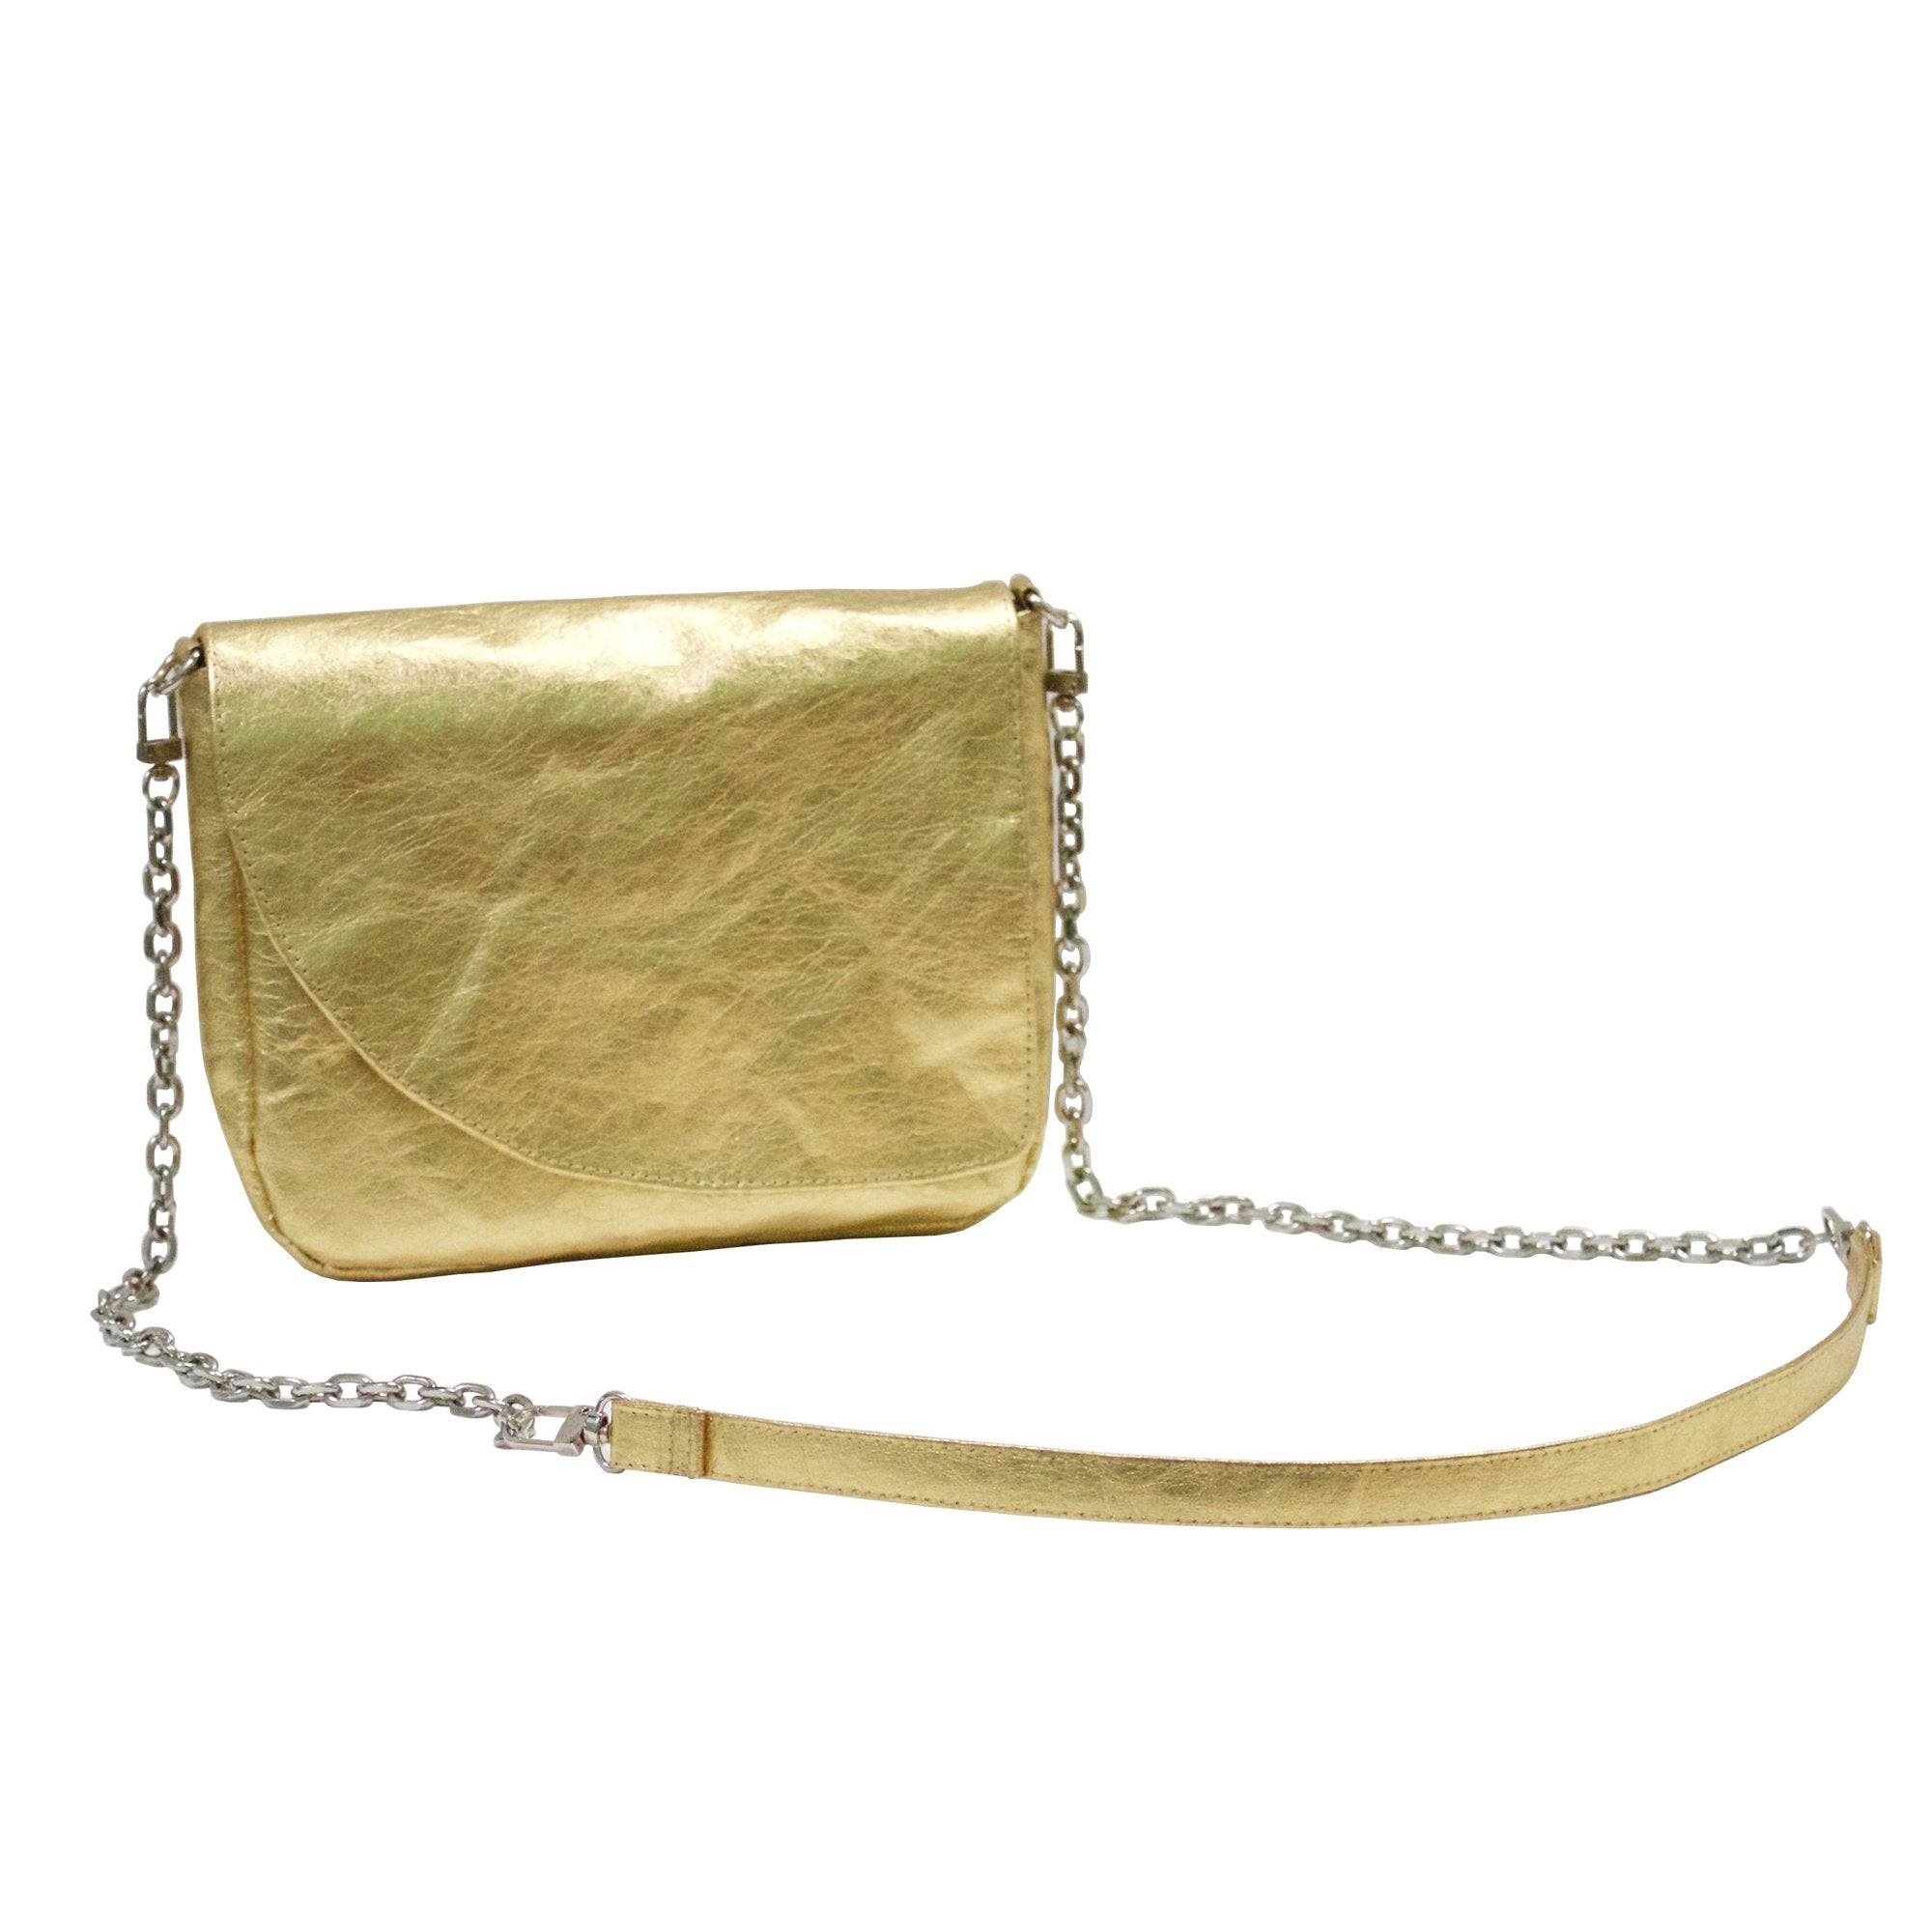 Electra Metallic Evening Clutch Bag made from Washable Paper